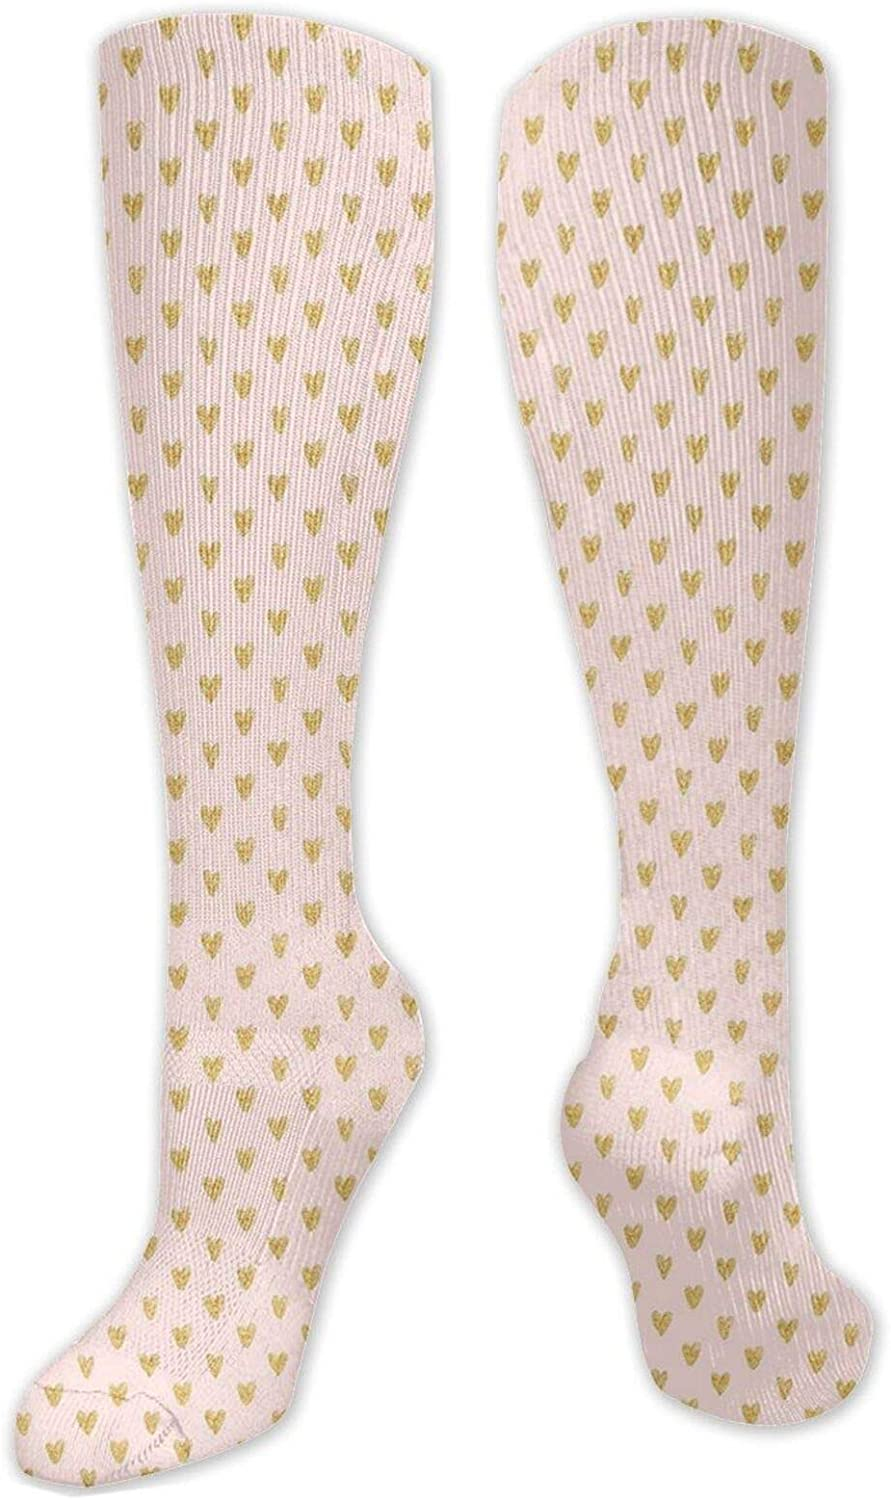 Fashion Compression Socks,Performance Polyester Cushioned Athletic Crew Socks, for Running,Athletic